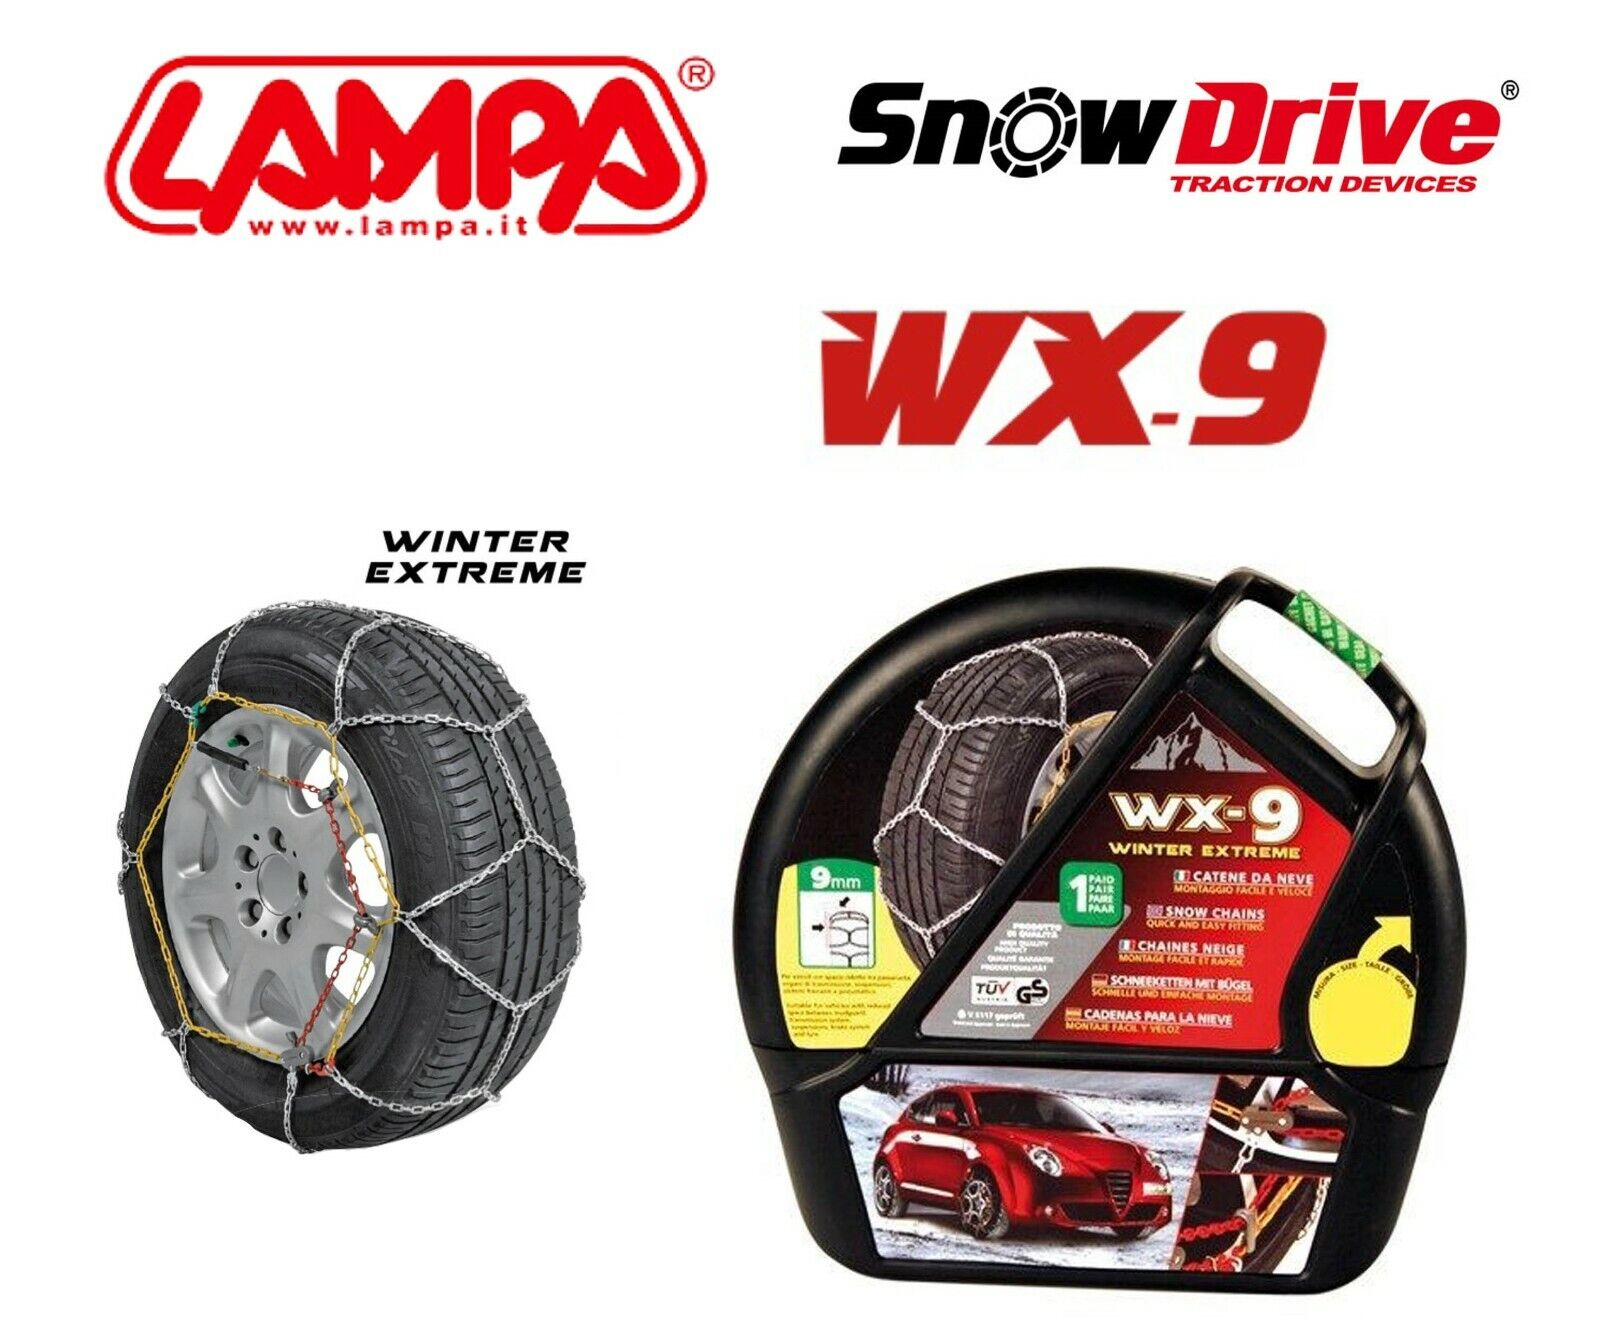 Catene neve a rombo 9mm Omologate ONORM V 5117 BMW Serie 3 E46 Gomma 205//55R16